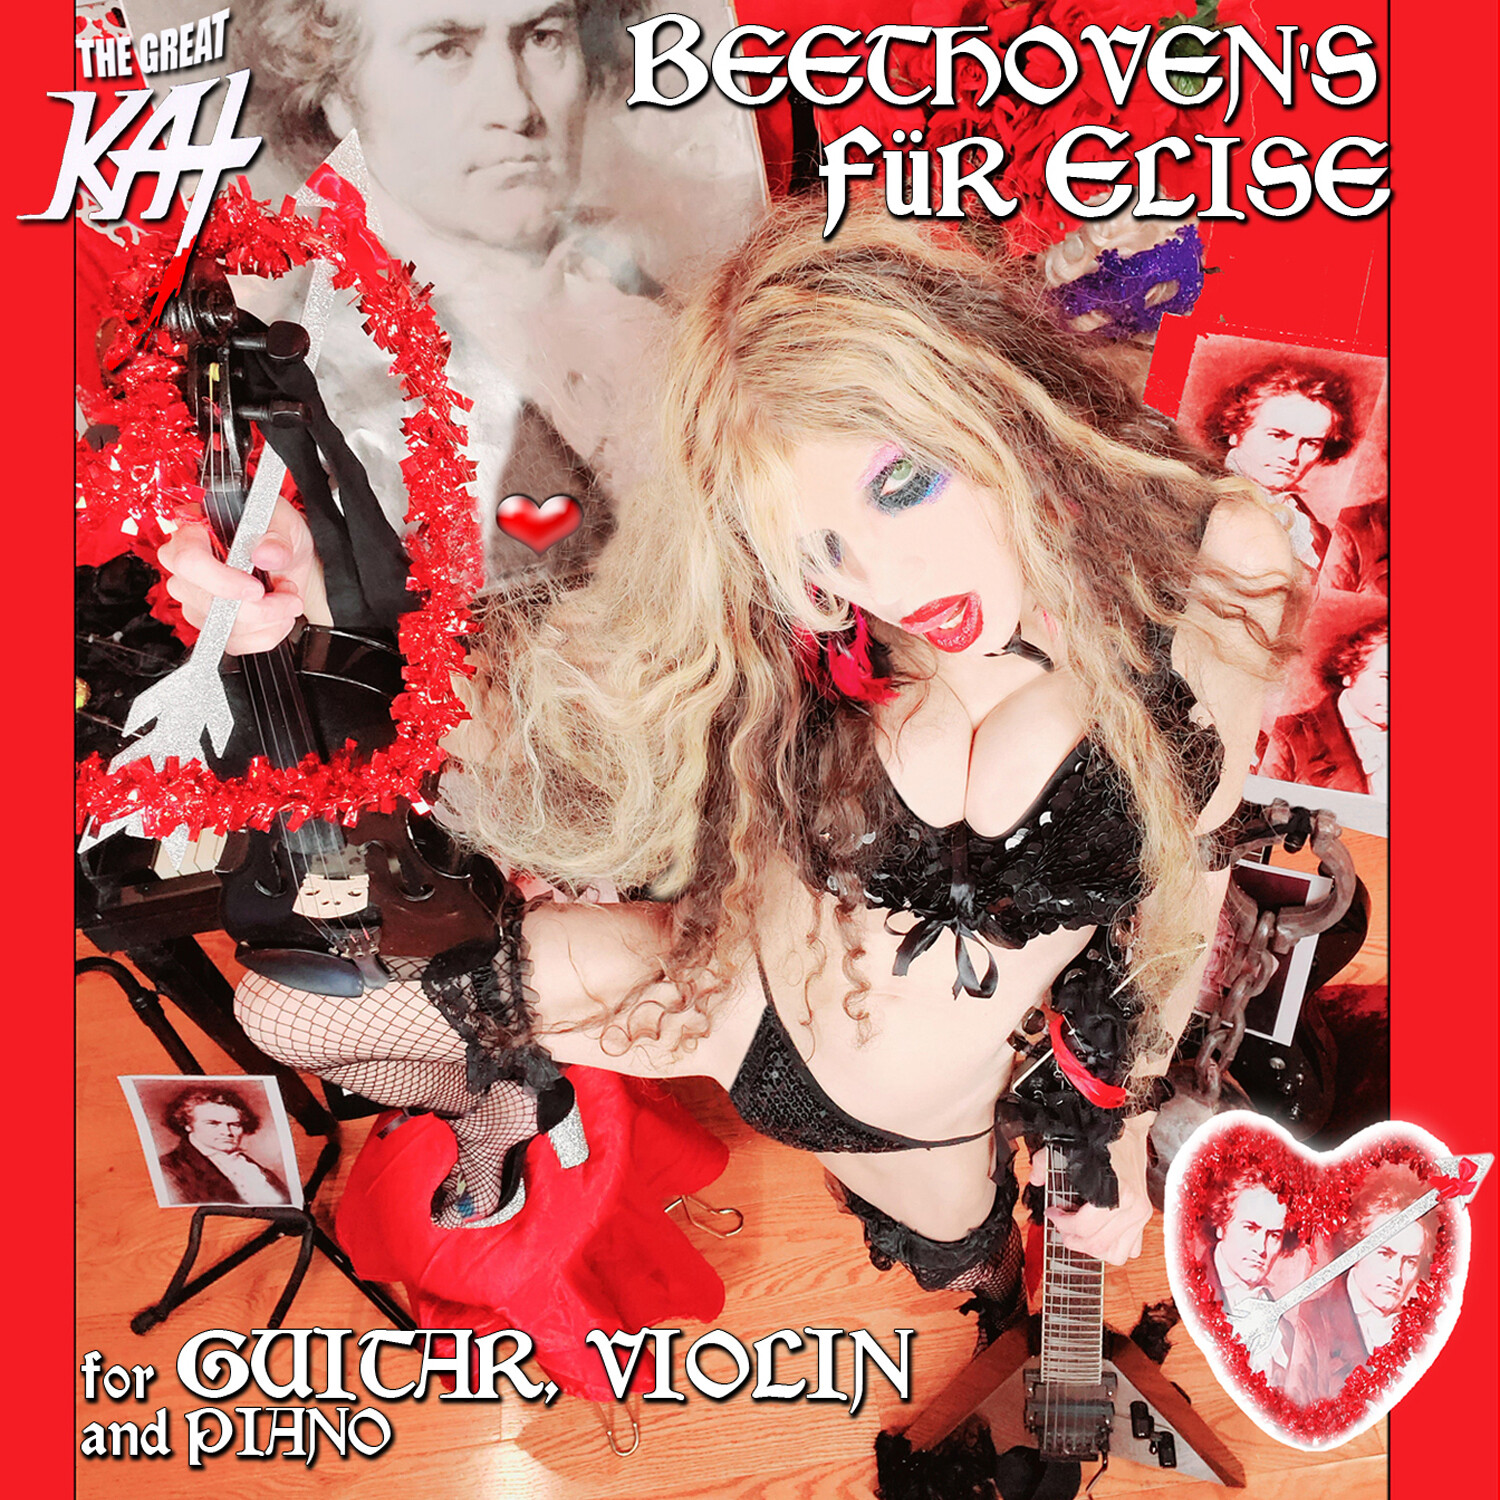 "NEW BEETHOVEN'S ""FÜR ELISE for GUITAR, VIOLIN and PIANO"" SINGLE Music CD by THE GREAT KAT (1:10)! PERSONALIZED AUTOGRAPHED by THE GREAT KAT! (Signed to Customer's Name)!"